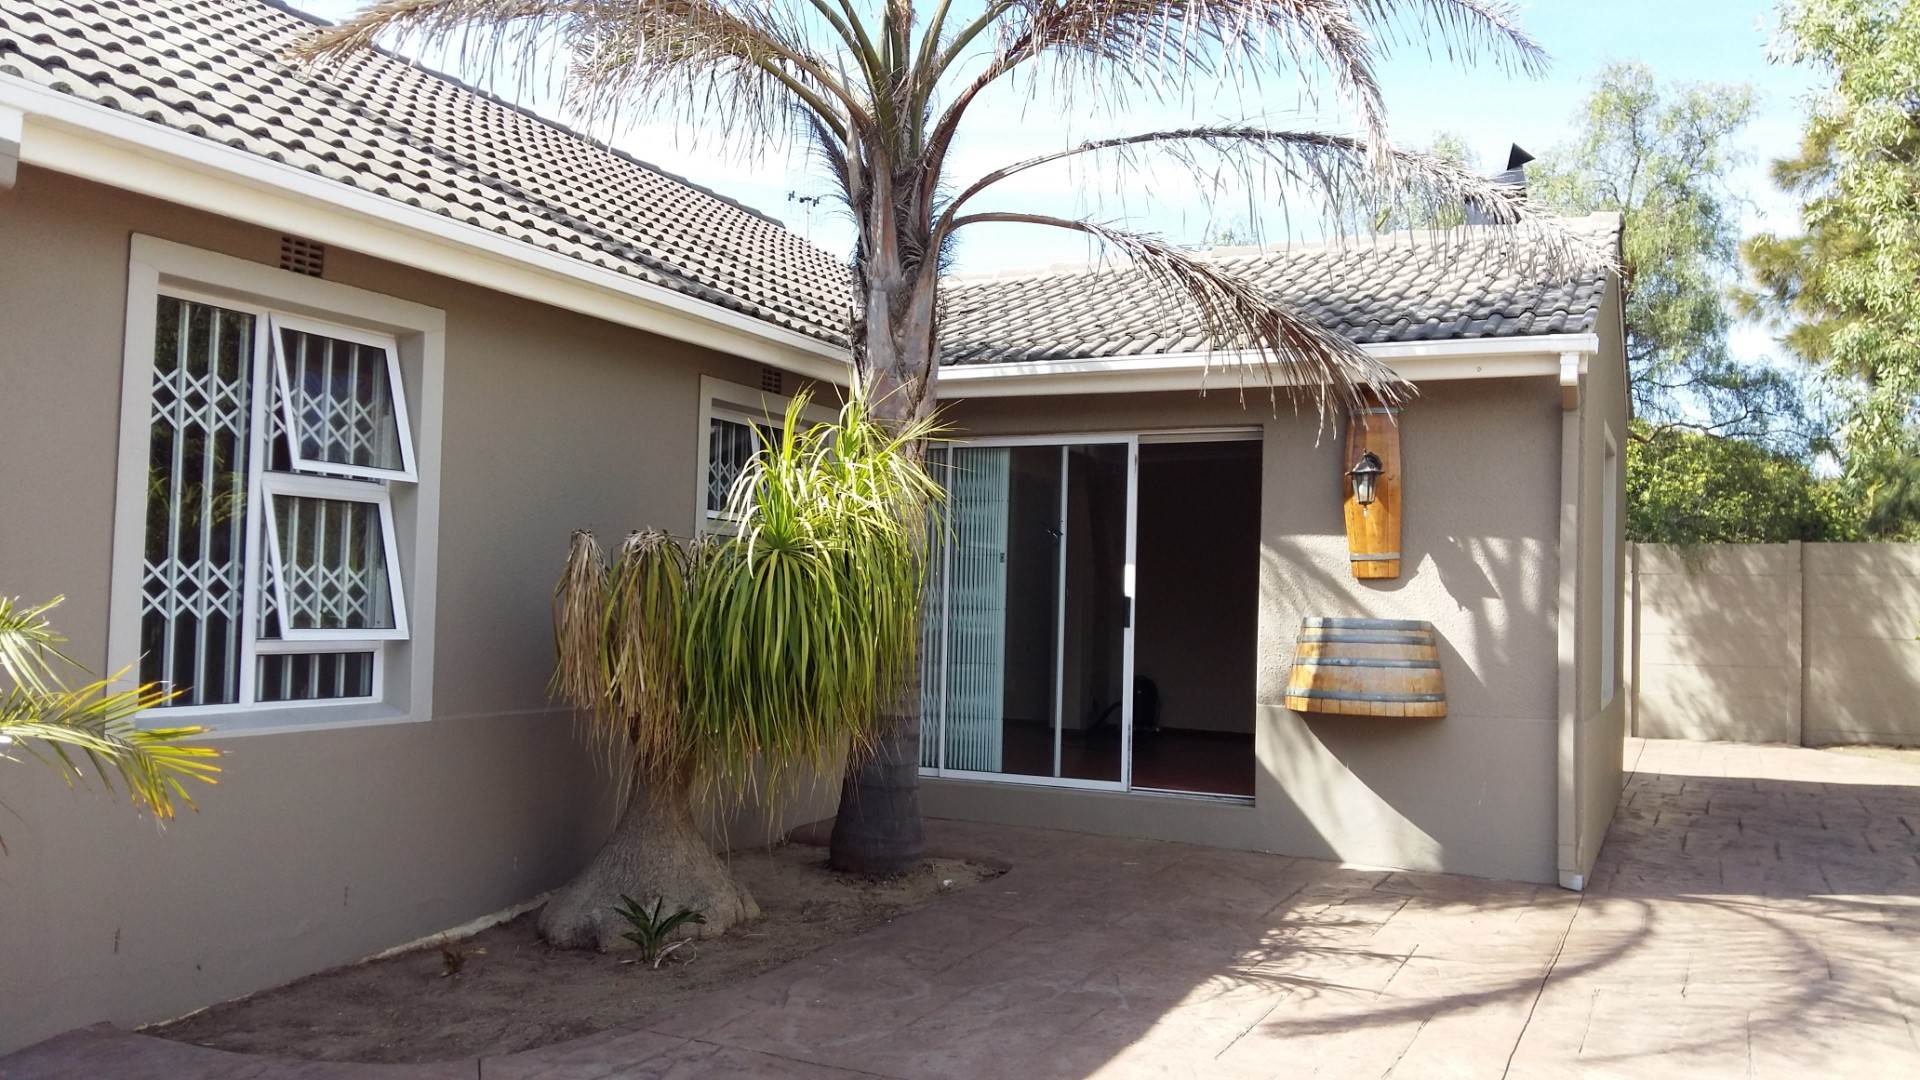 3 BedroomHouse To Rent In Sunningdale